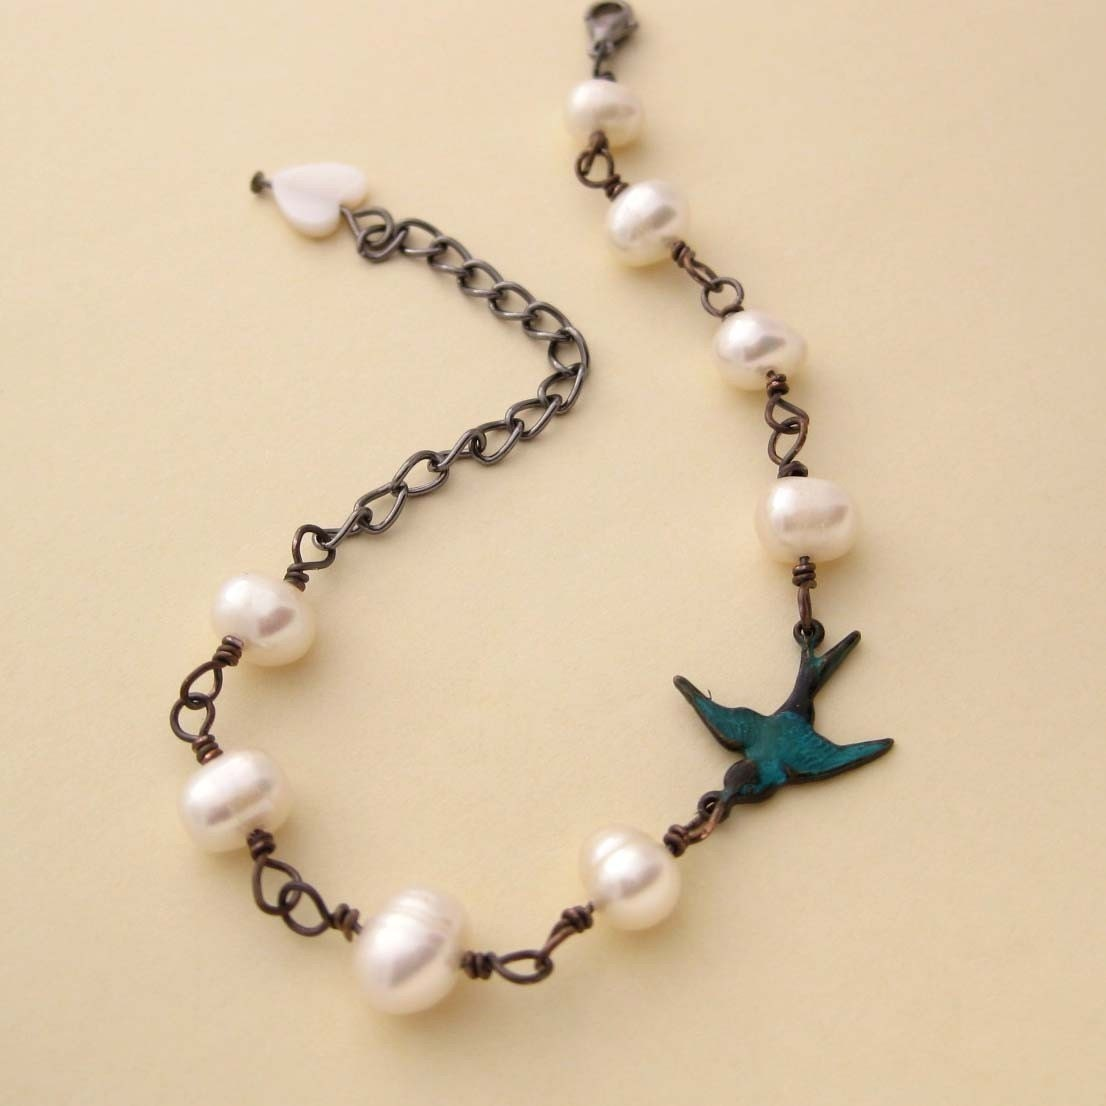 One Swallow Bracelet, freshwater pearls, antiqued teal bird, mother of pearl, wire wrapped